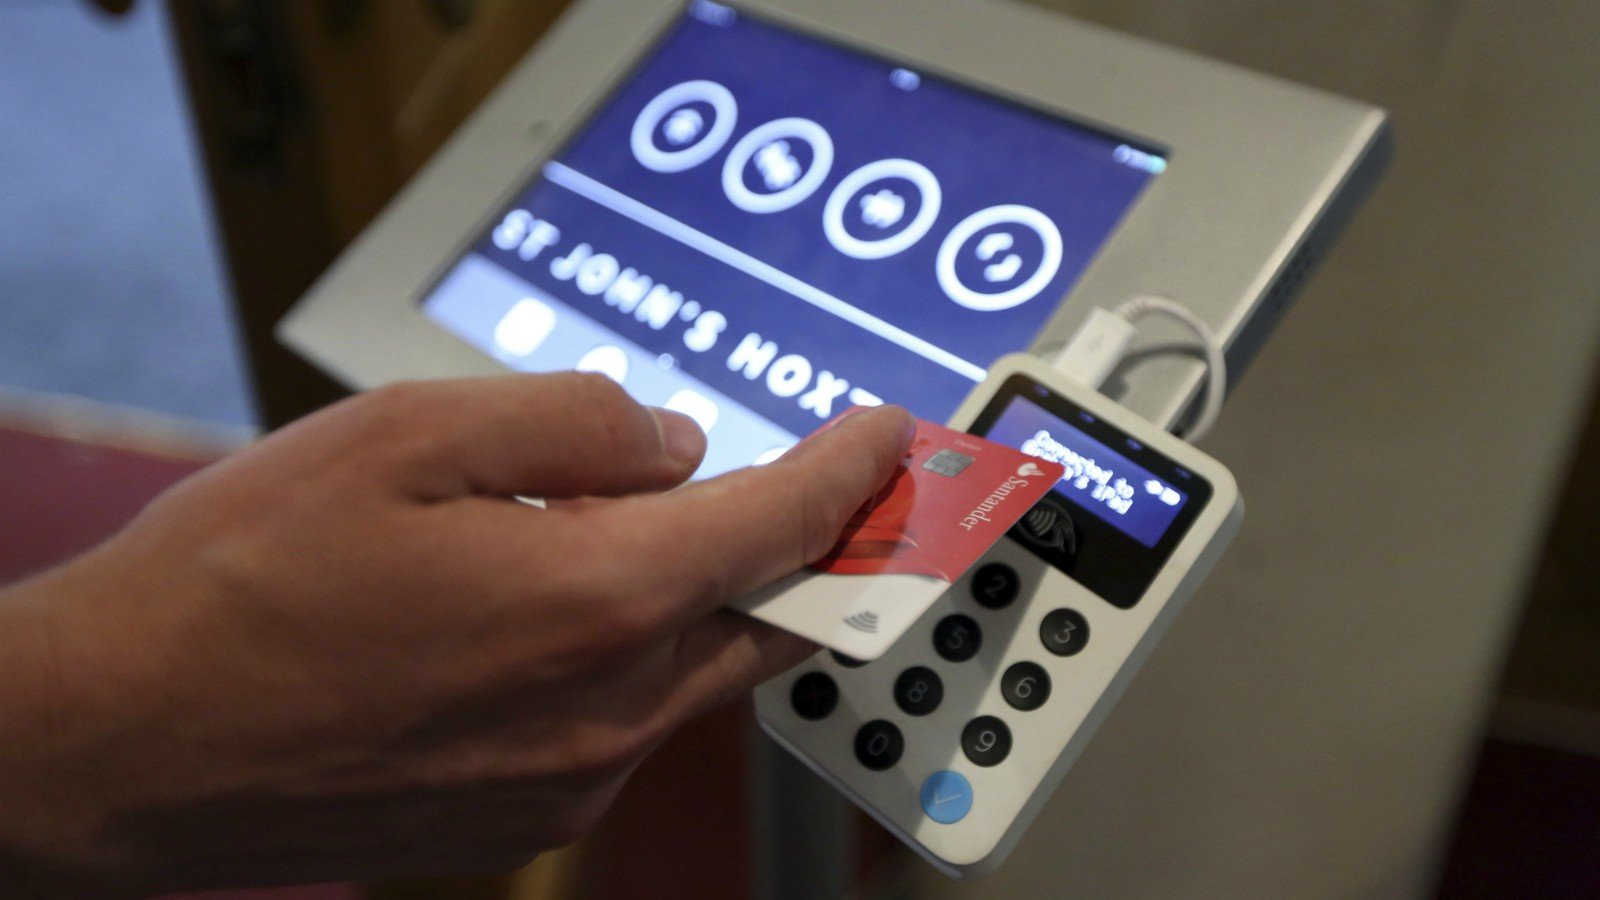 In this photo taken on Aug. 2, 2018, Aaron Rodewald, an operations and finance manager at St. John's Church, demonstrates a device that allows churchgoers to donate money using contactless payments, in Hoxton, London. Thousands of Christian churches across the world are now using portable card readers or apps to take donations as people increasingly stop carrying cash on them. The Church of England says 16,000 religious sites now have access to portable card readers. In the U.S., hundreds of churches have installed kiosks where the faithful can swipe a card to donate. (AP Photo/Robert Stevens)